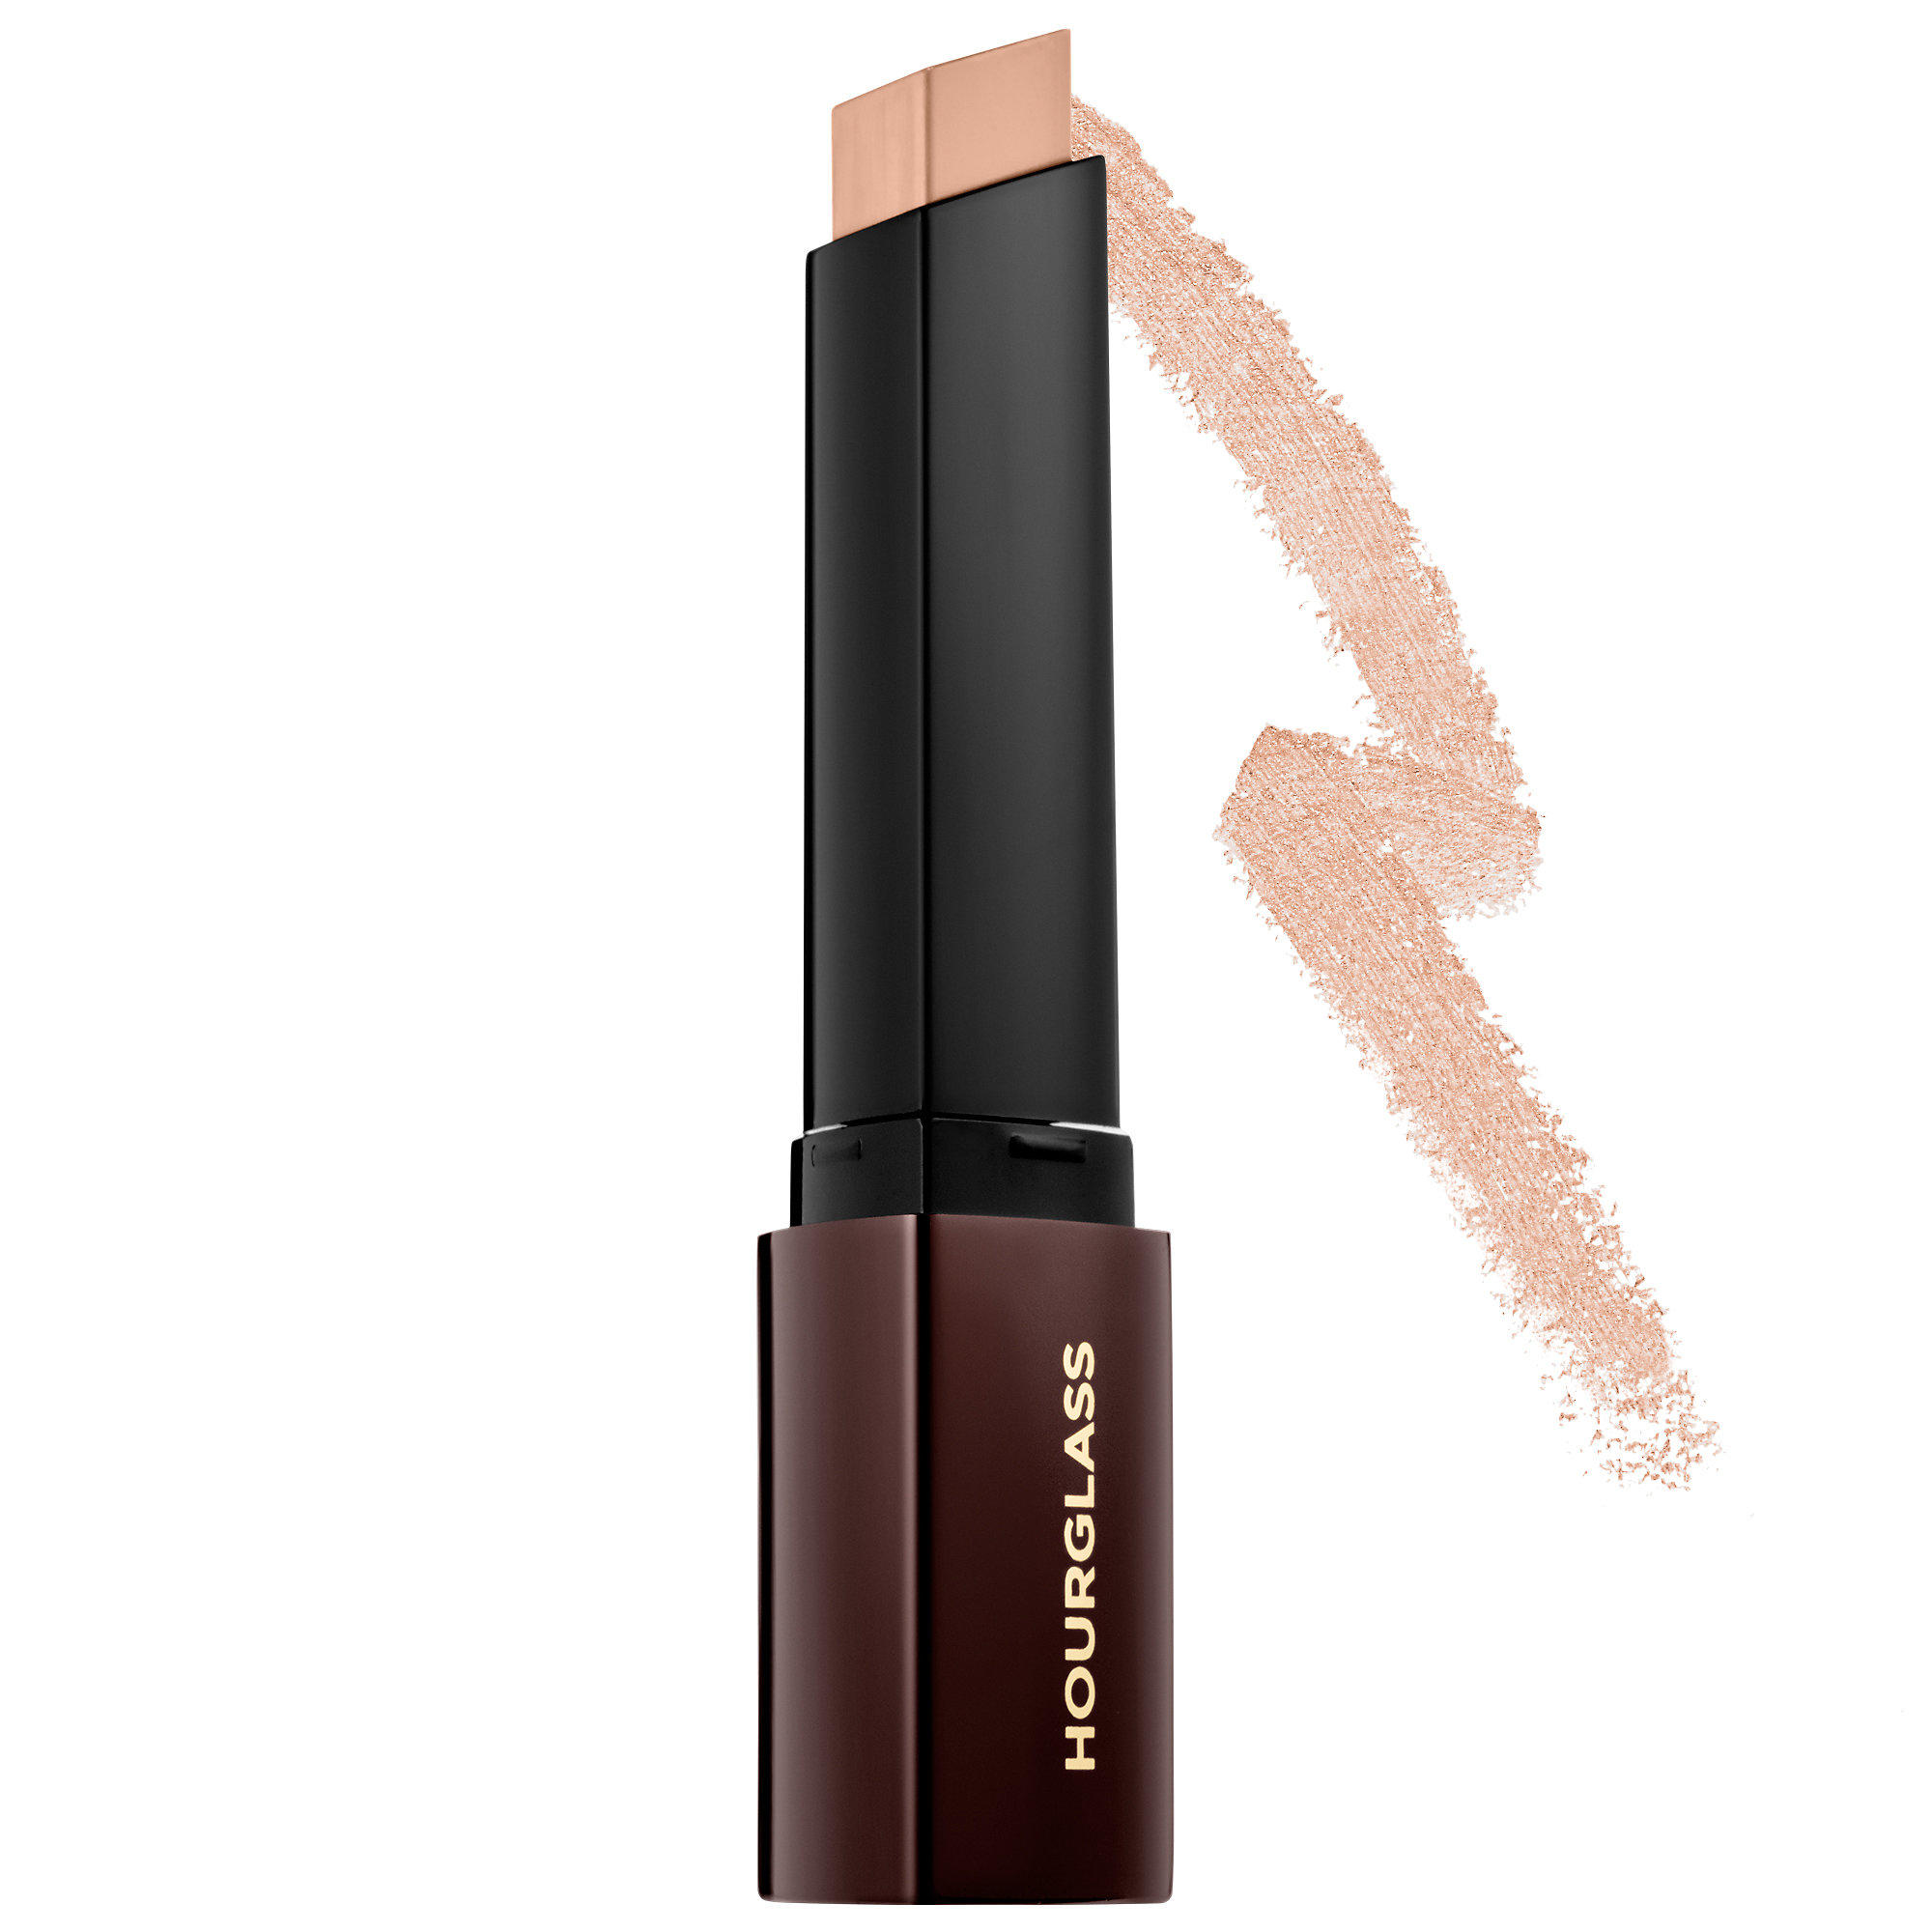 Hourglass Vanish Seamless Finish Foundation Stick Shell